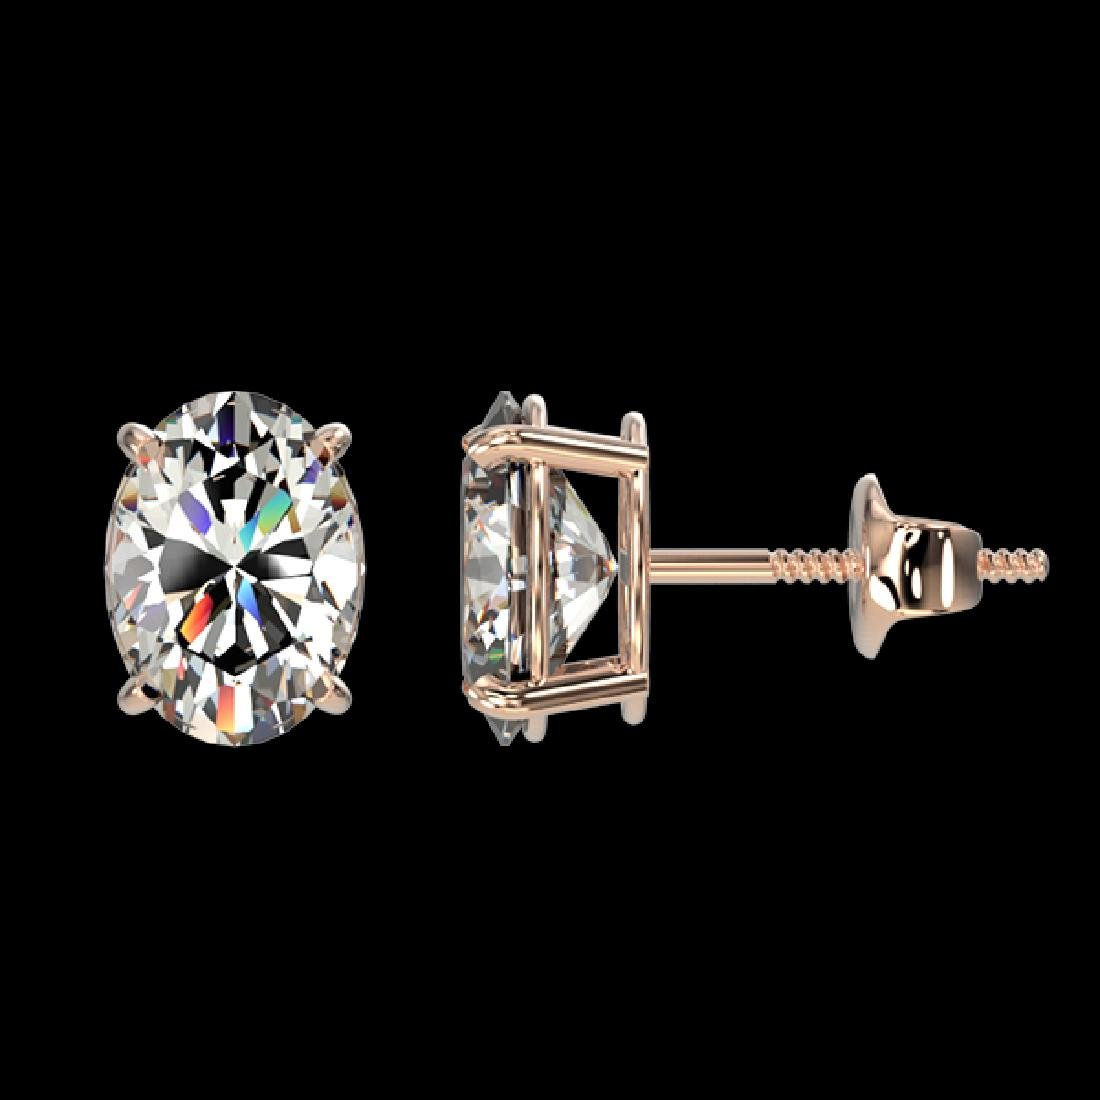 2 CTW Certified VS/SI Quality Oval Diamond Solitaire - 2